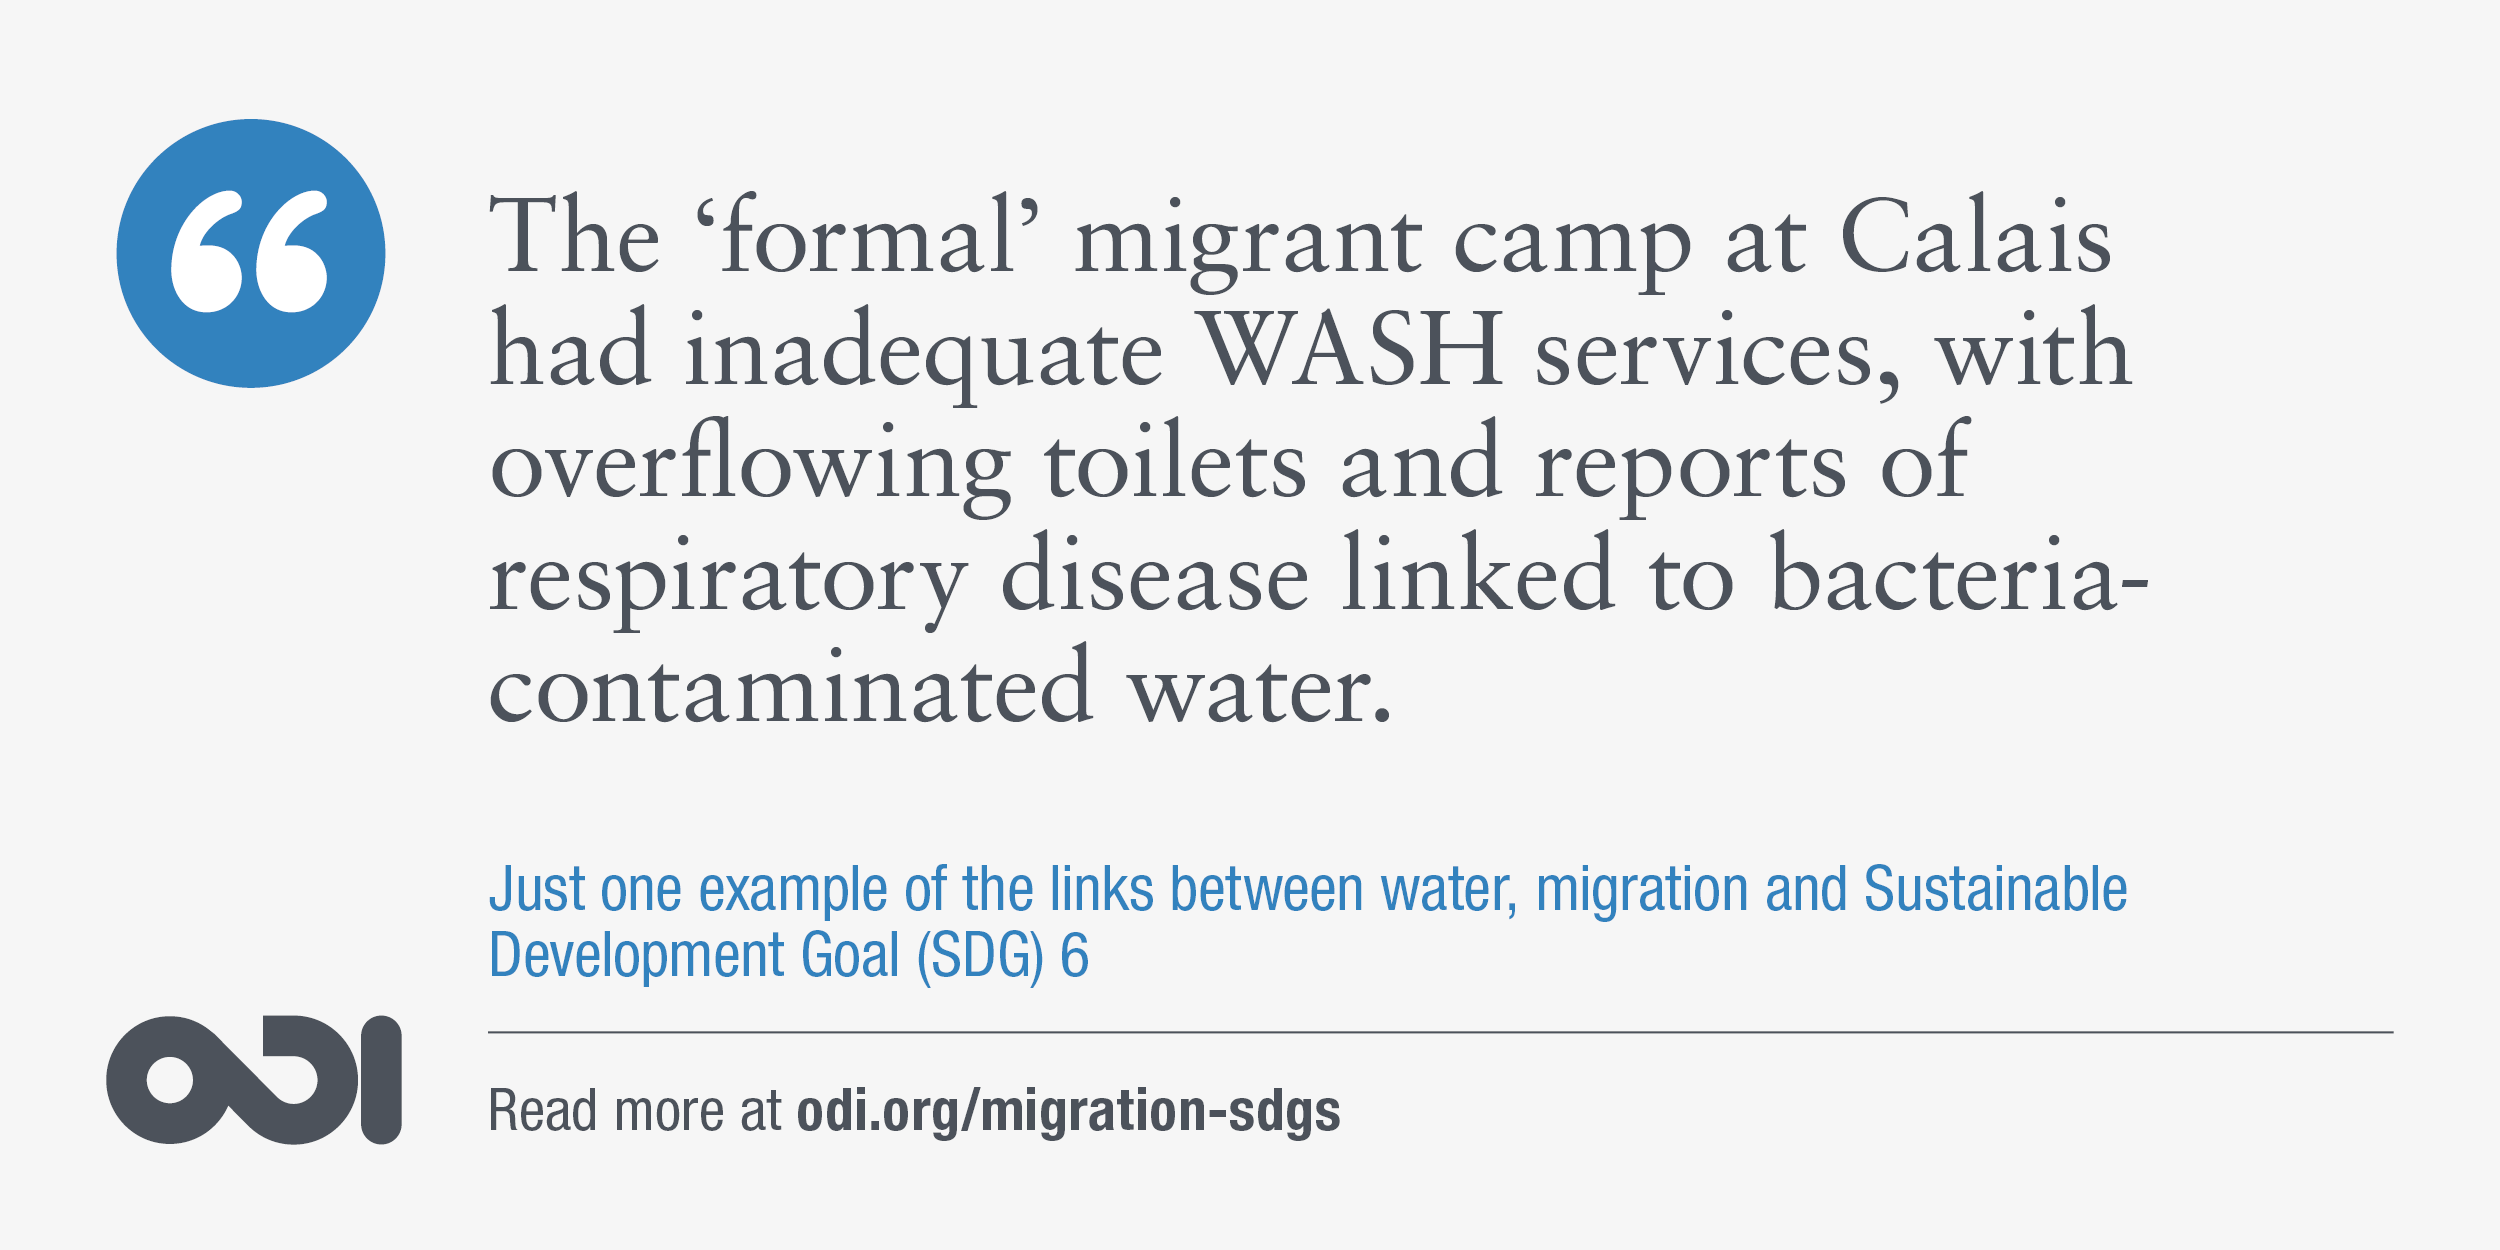 The links between water, migration and SDG 6.